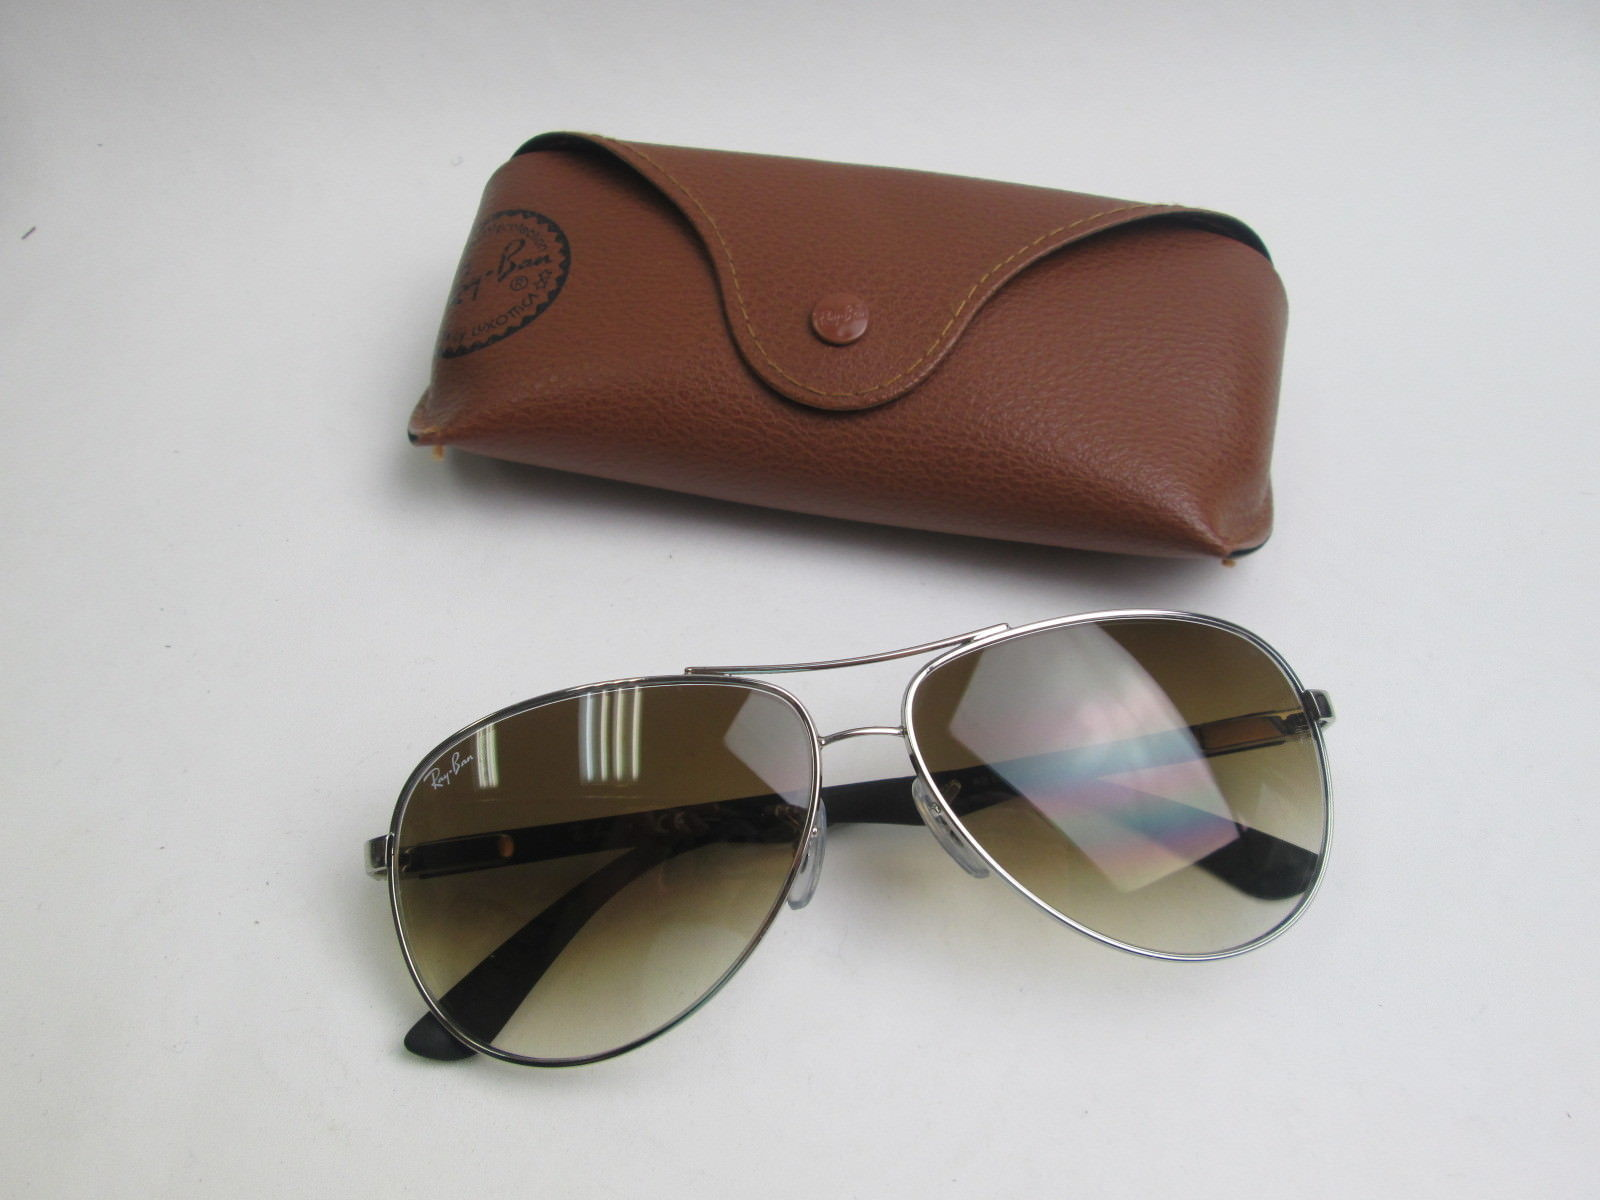 89b6e373c3 Rayban RB8313 003 40 Carbon Unisex and 50 similar items. S l1600